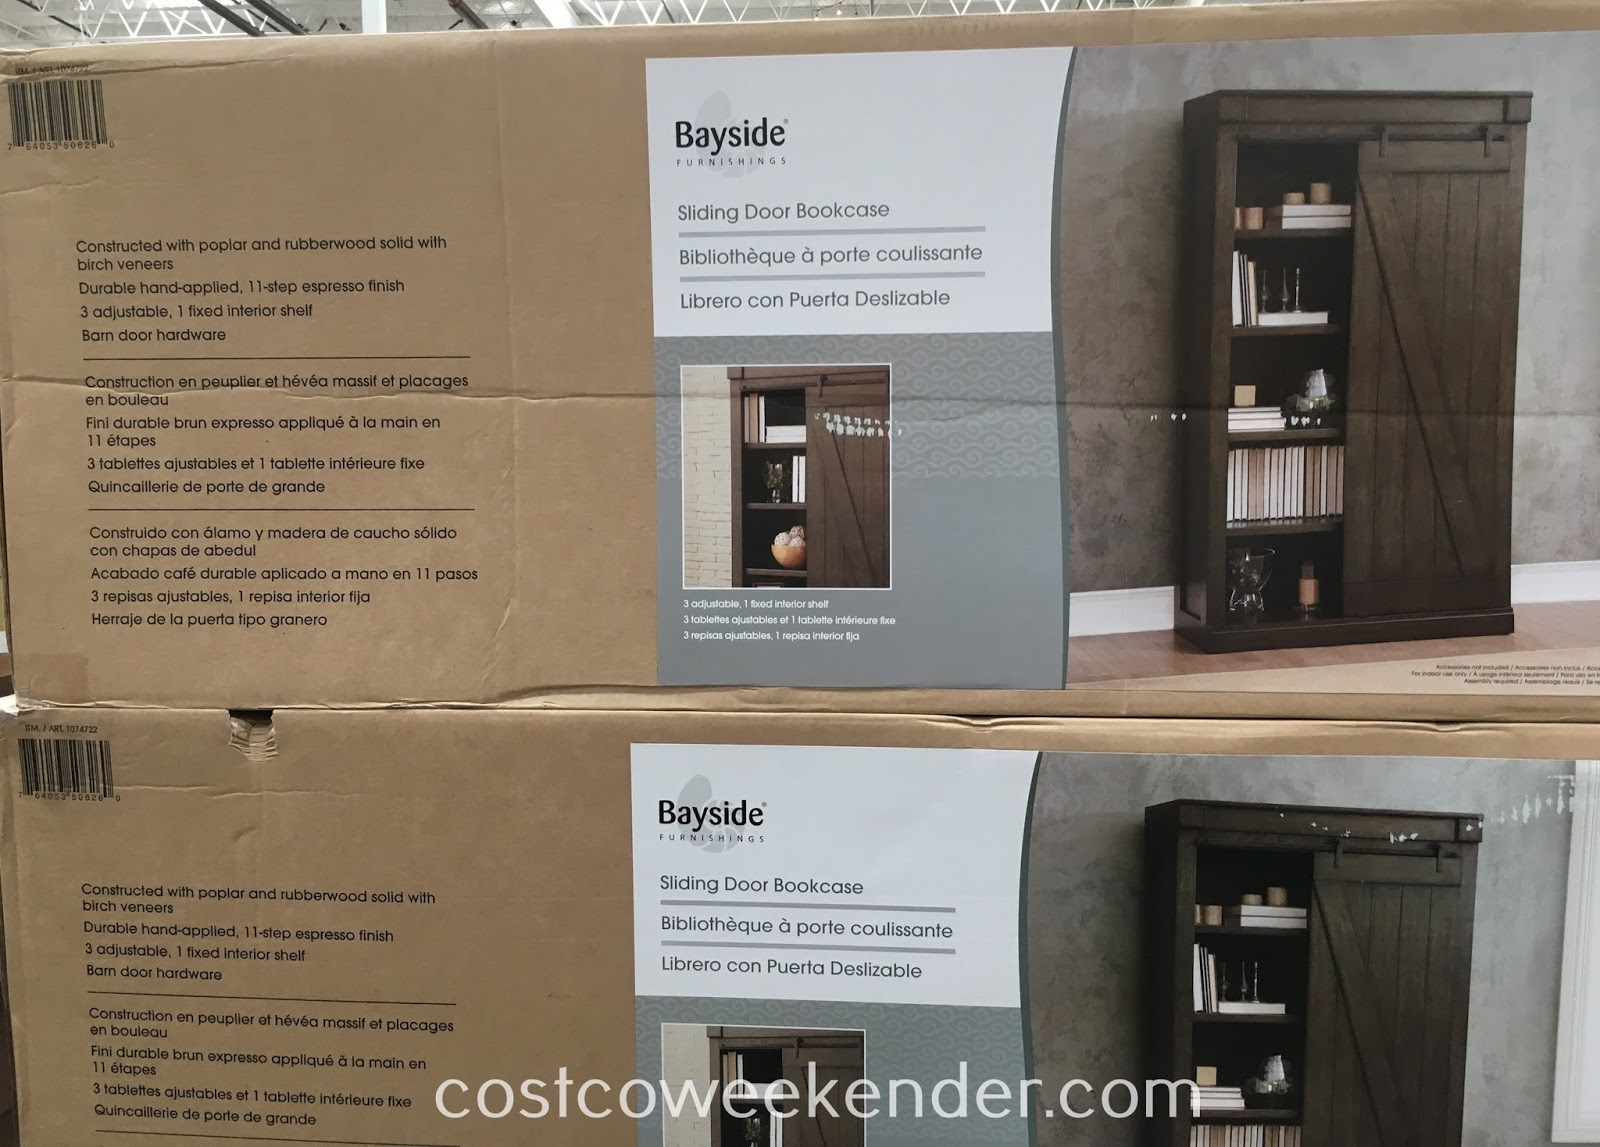 Bayside Furnishings Sliding Door Bookcase Costco Weekender